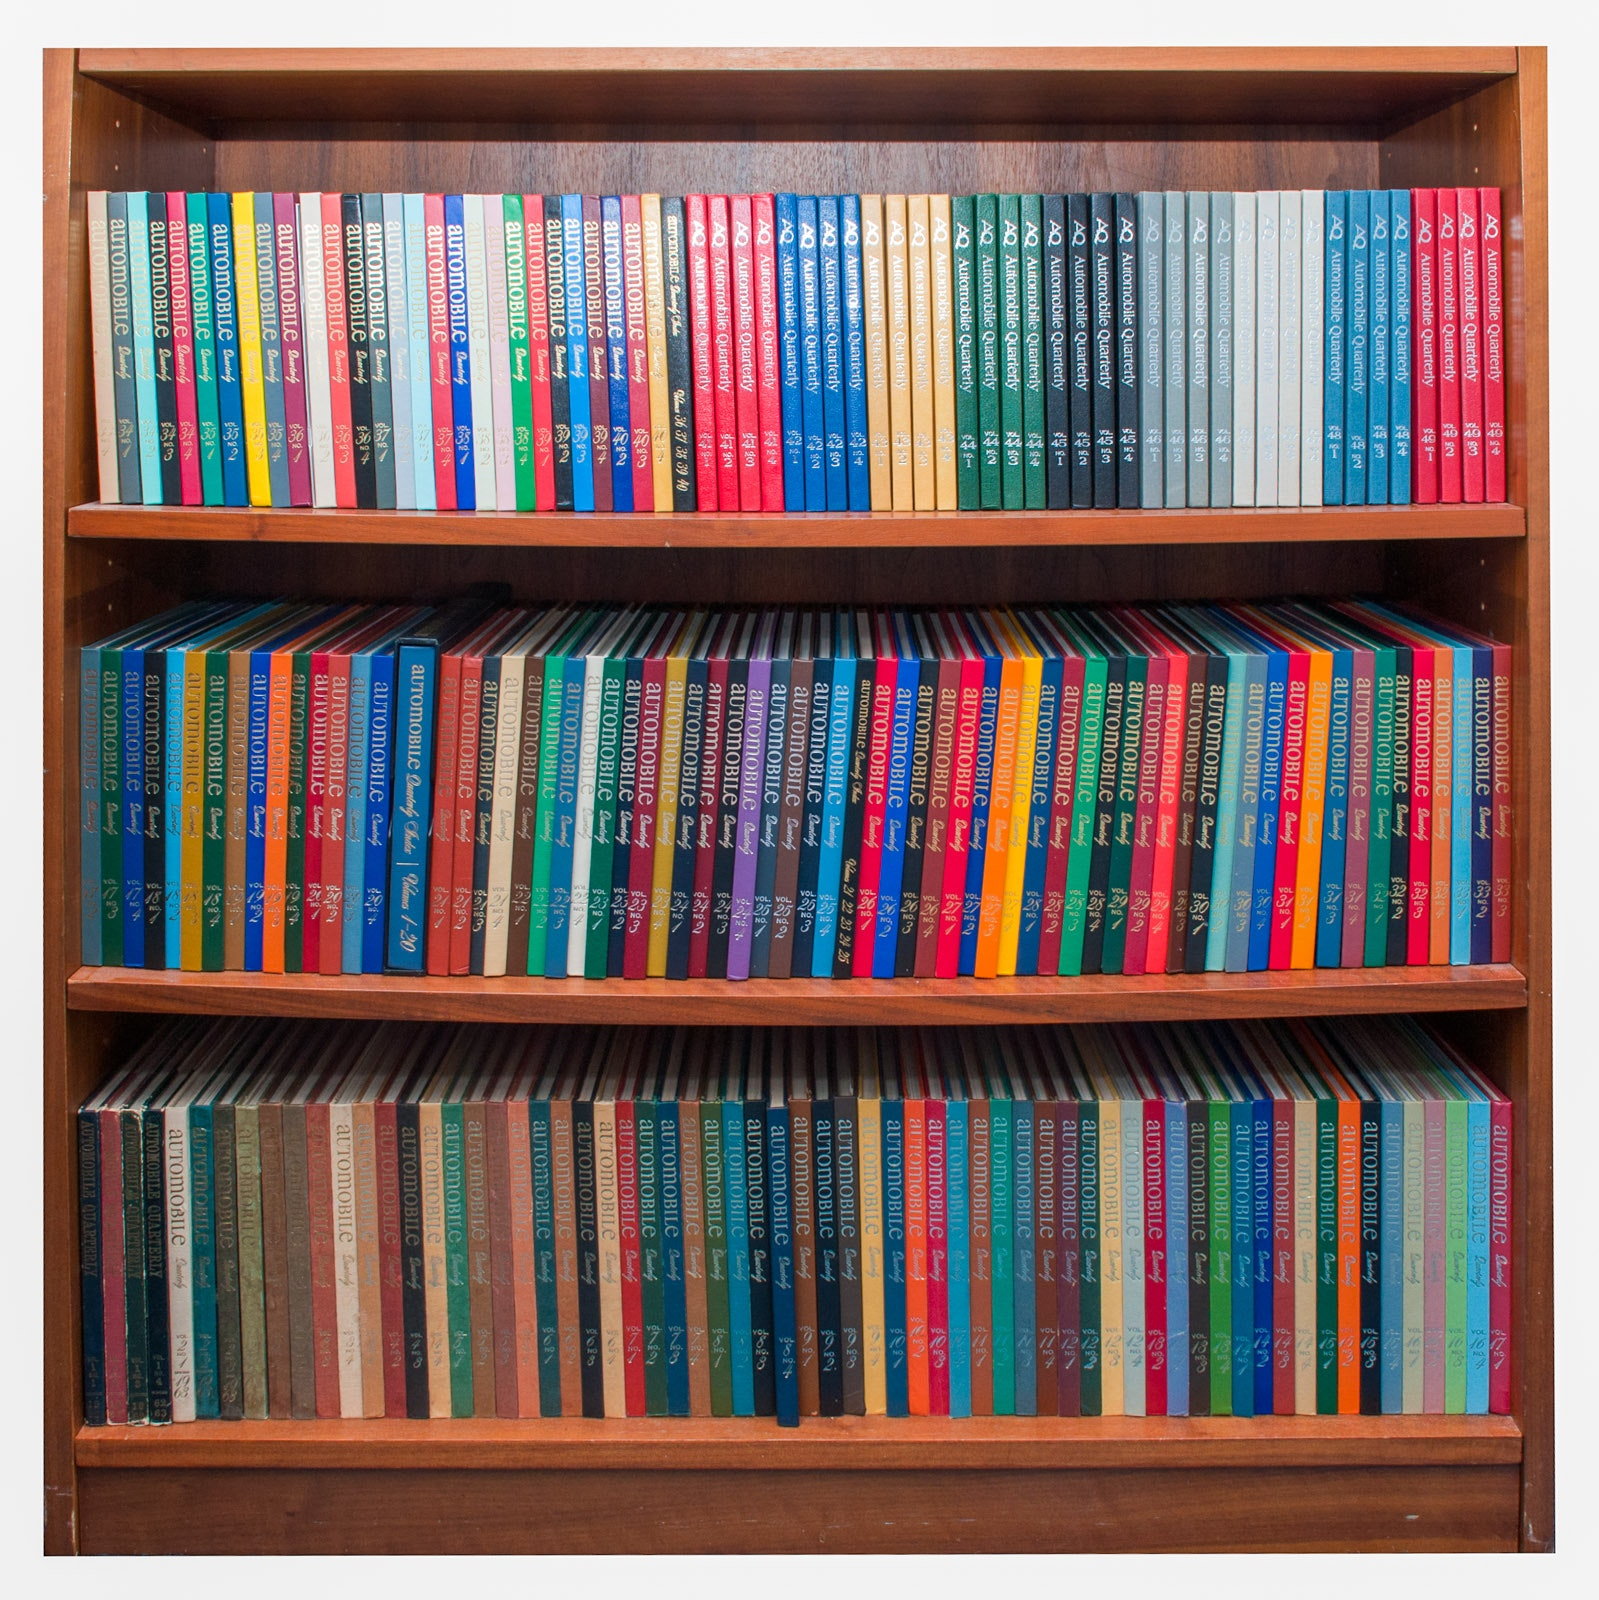 """Complete Collection of """"Automobile Quarterly"""" Hardcover Periodical, Volumes 1-52"""